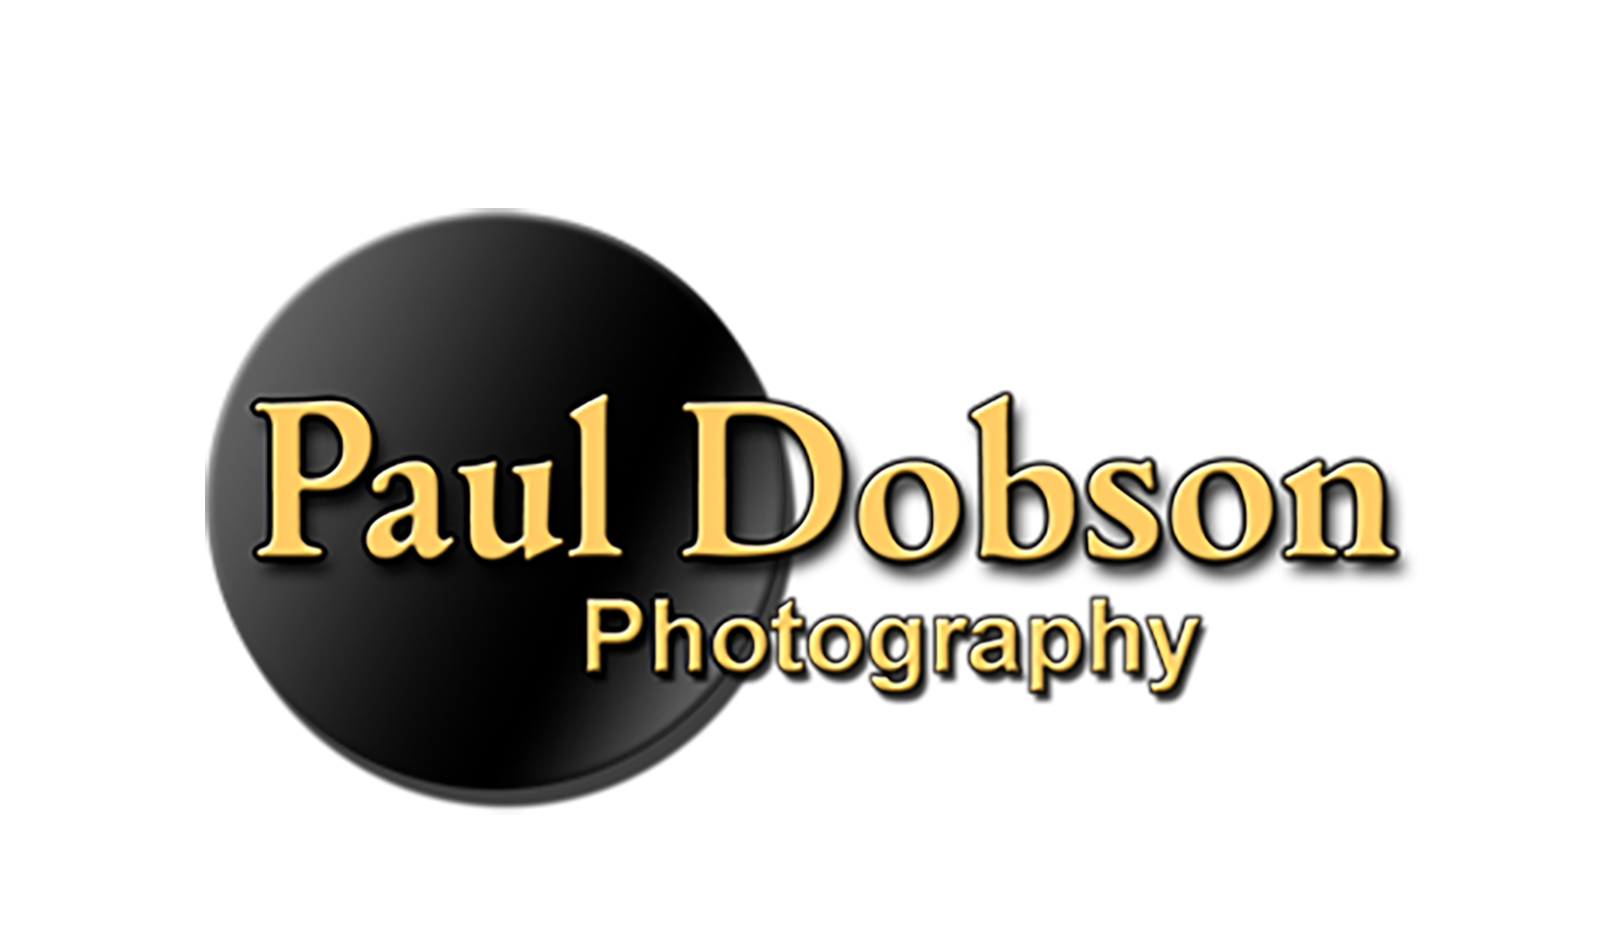 Paul Dobson Photography